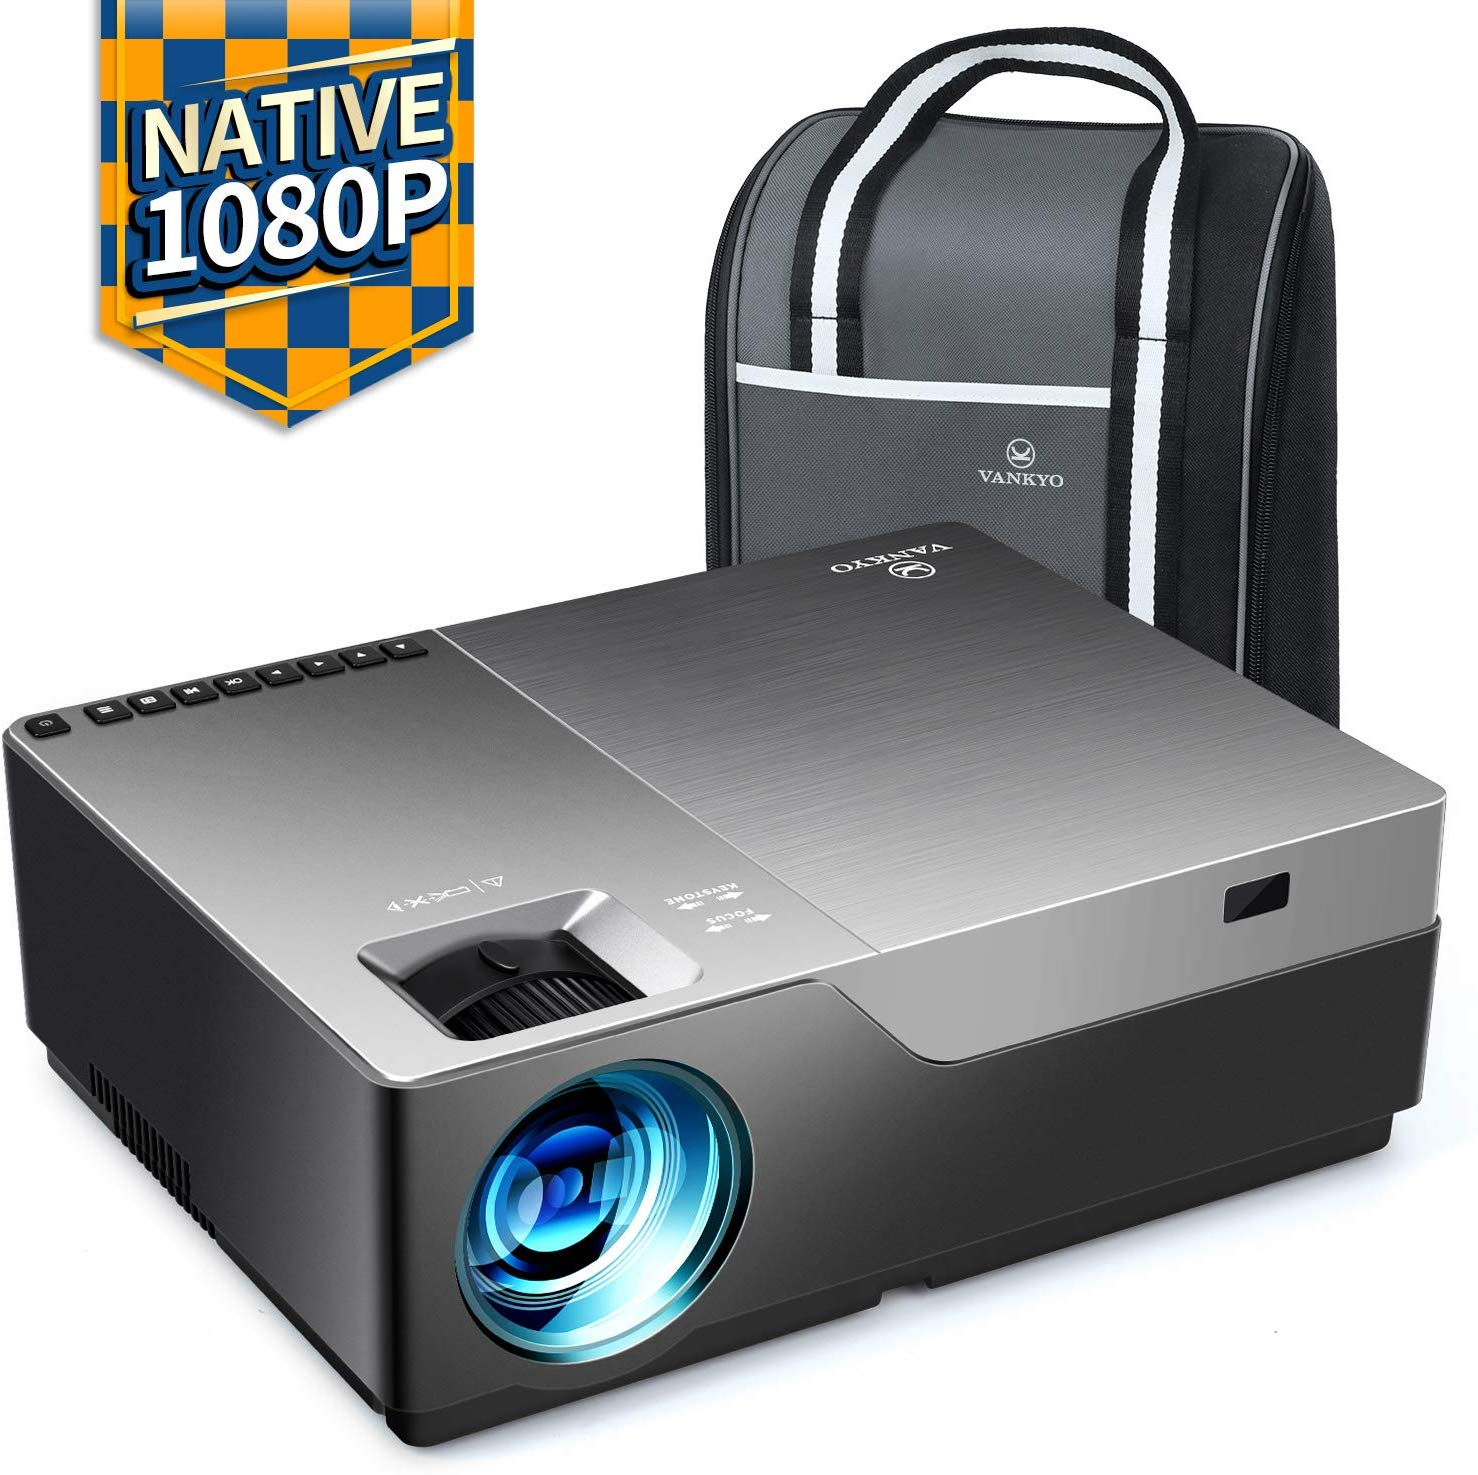 VANKYO Performance V600 Native 1080P LED Projector, 5500 Lumens HDMI Projector